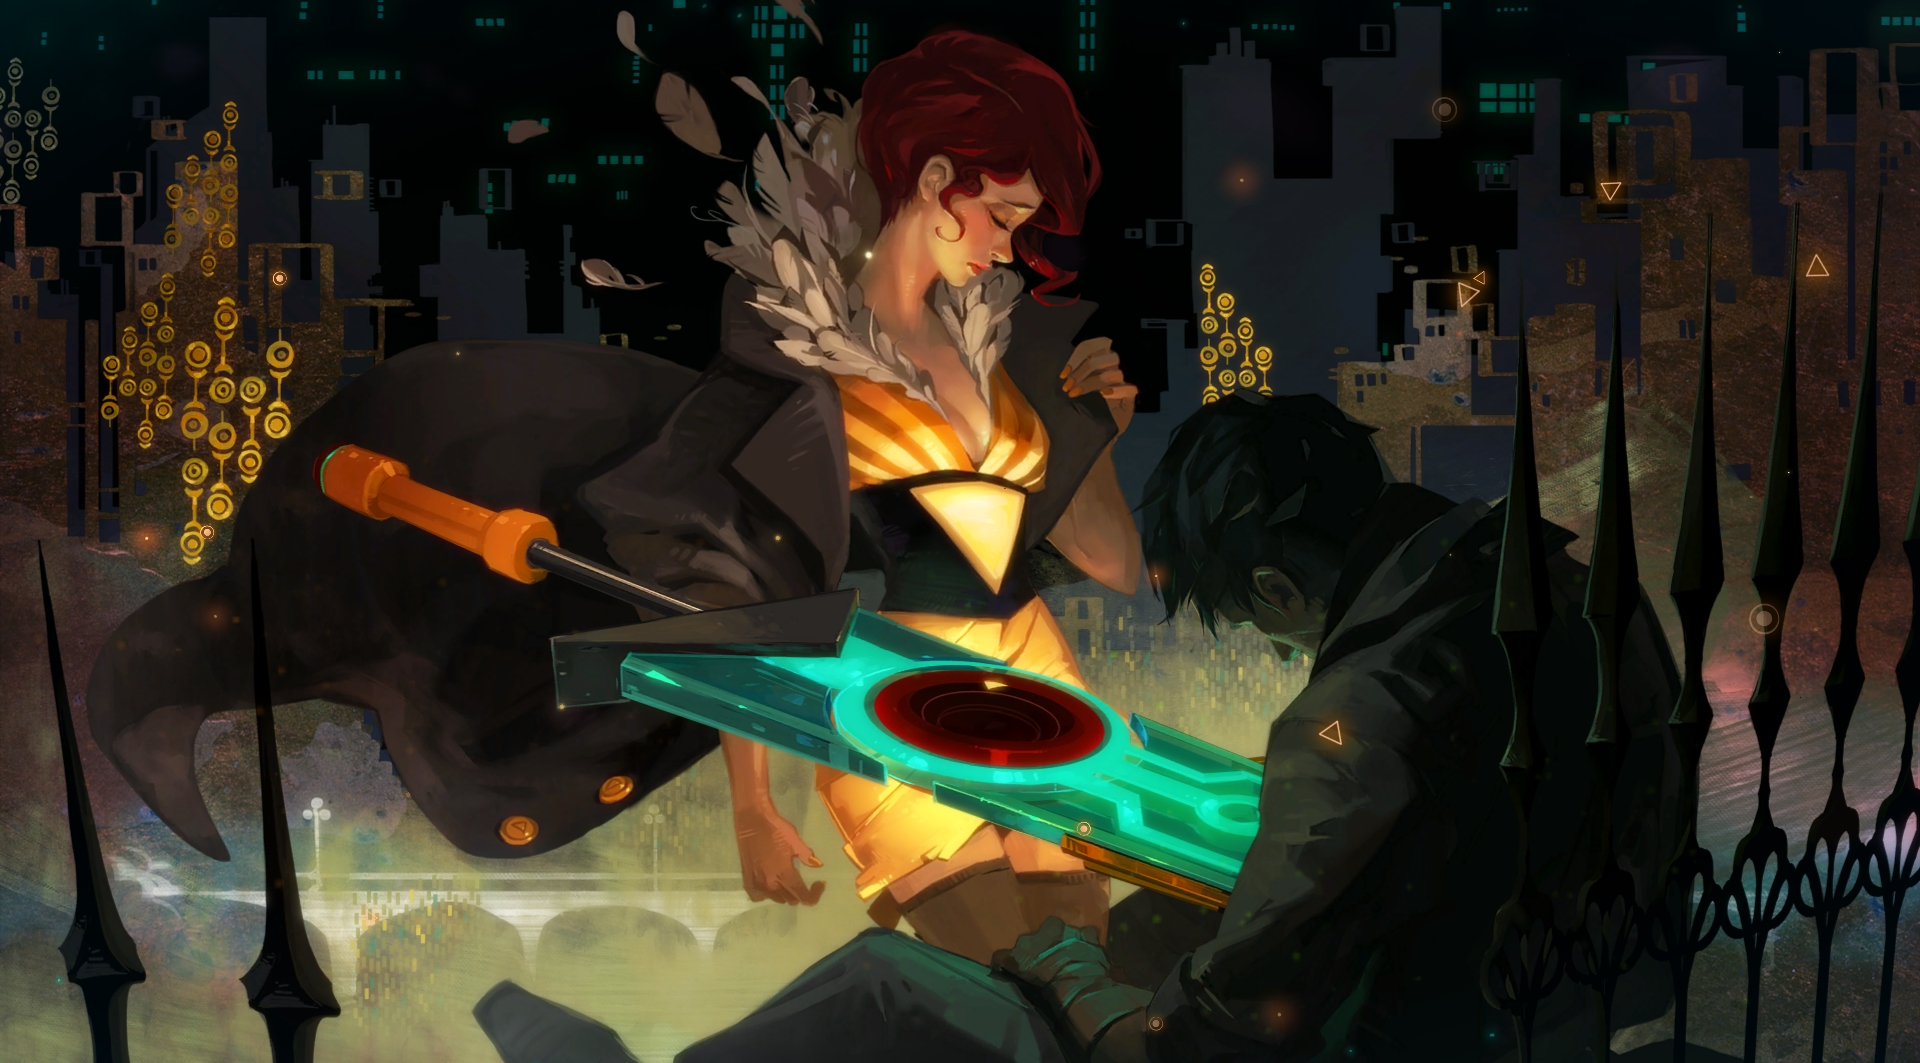 Look at this stuff. Transistor is ridiculously beautiful.